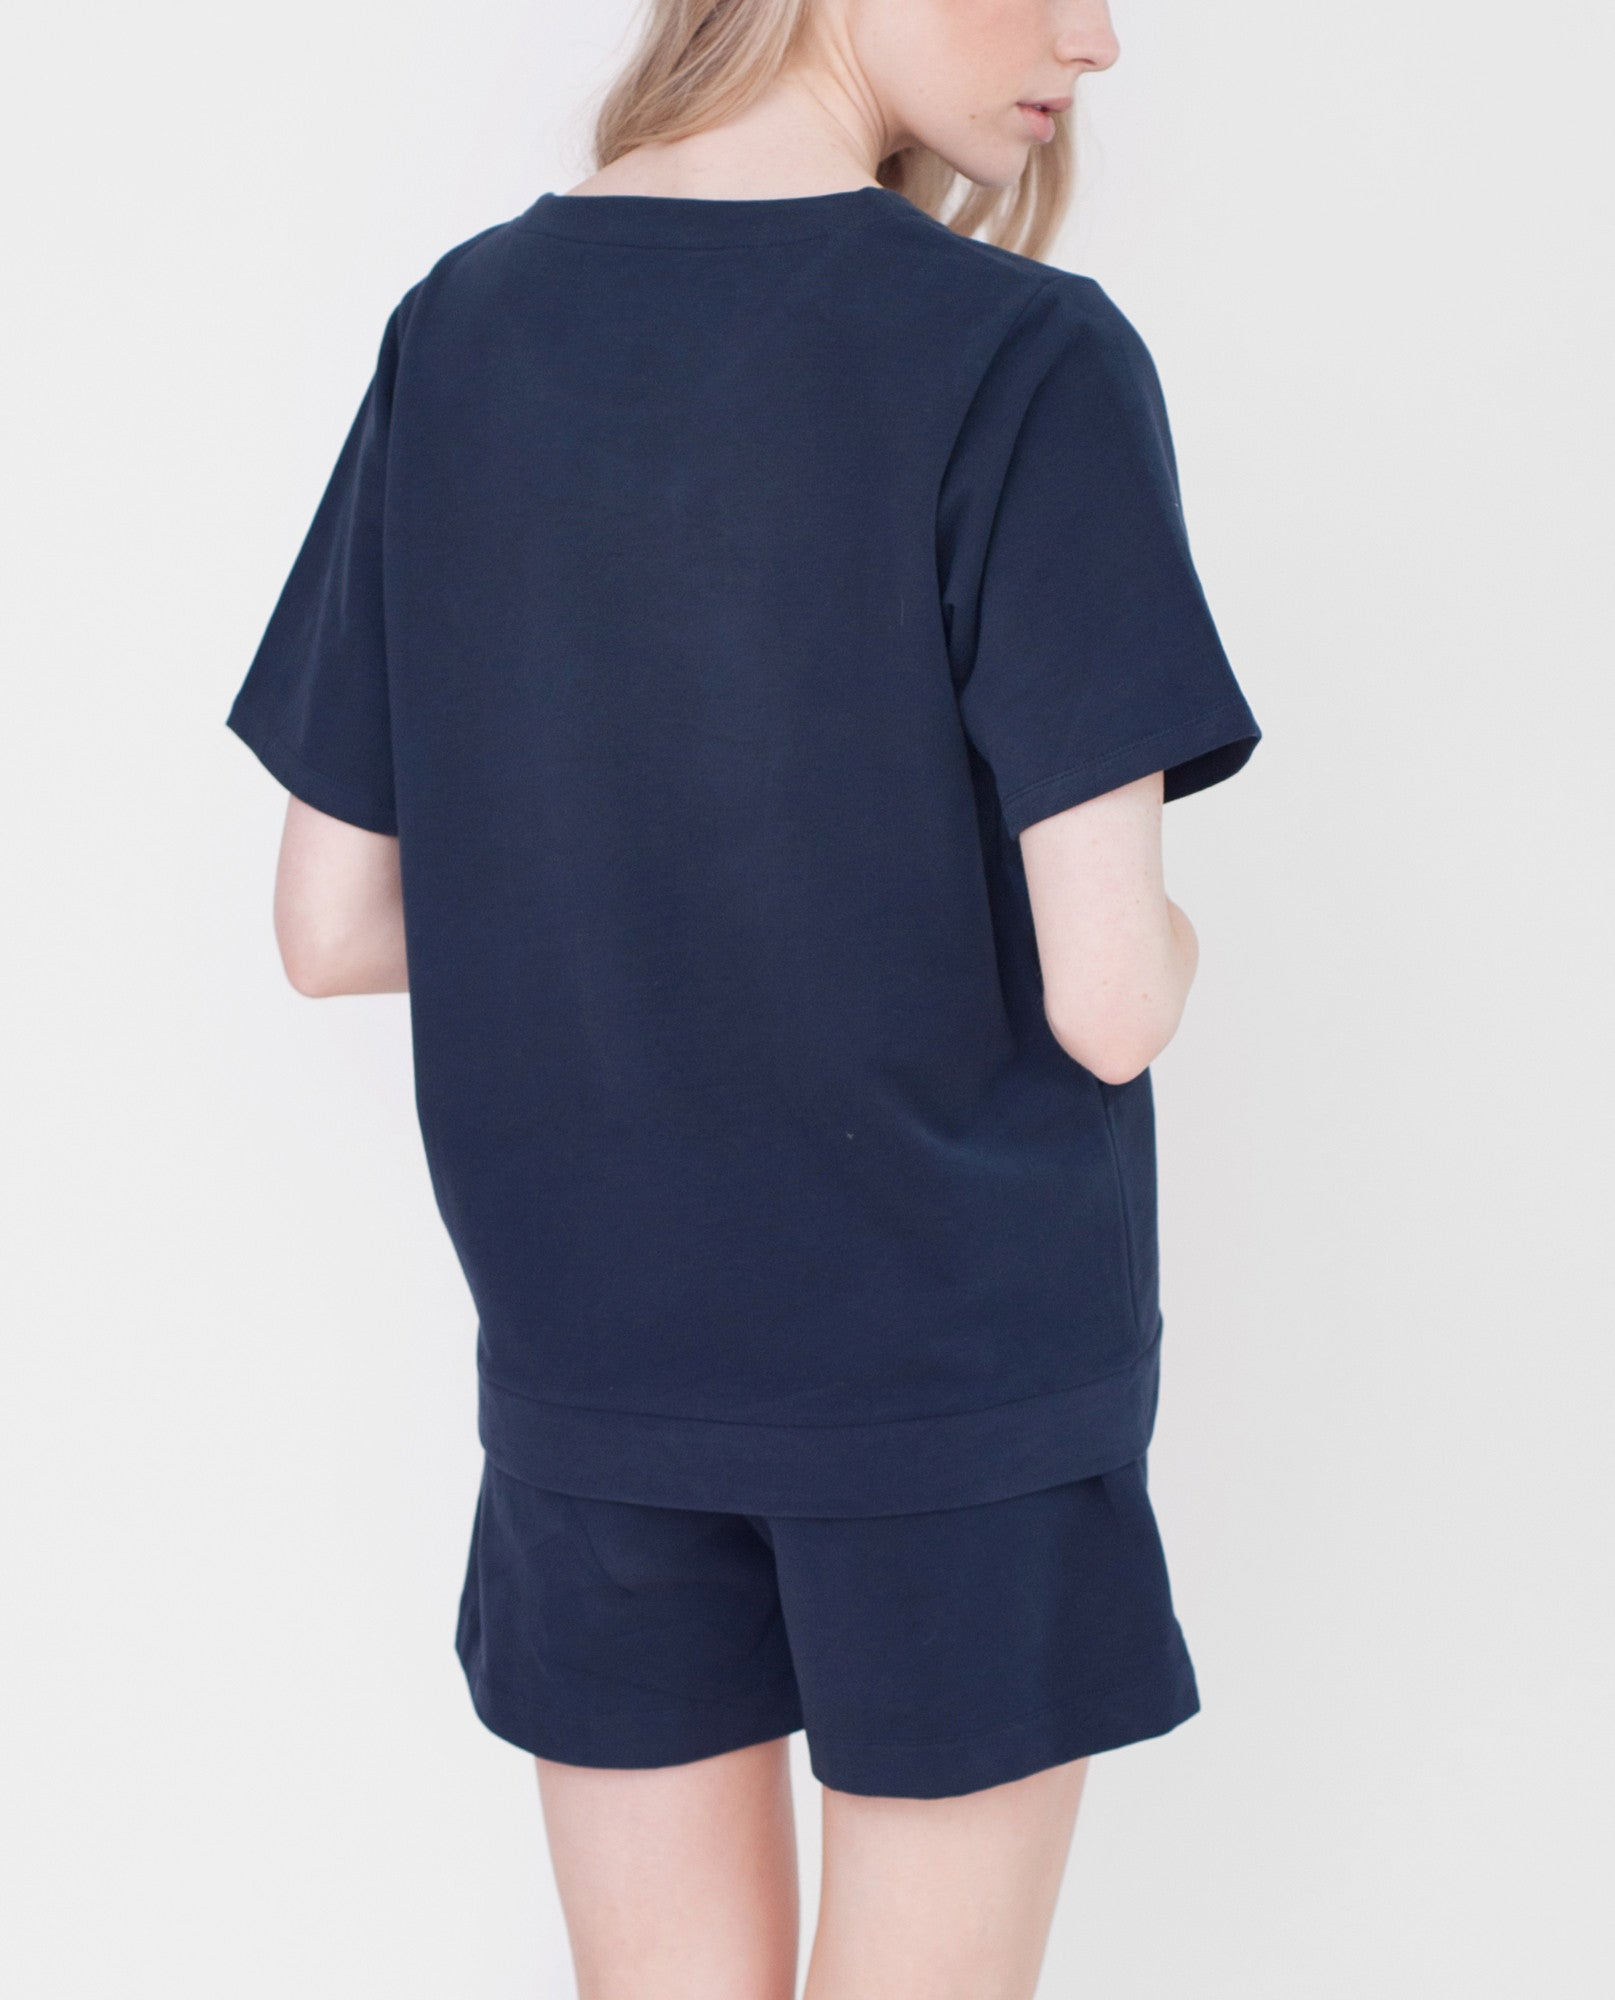 AVA Organic Cotton Top In Navy